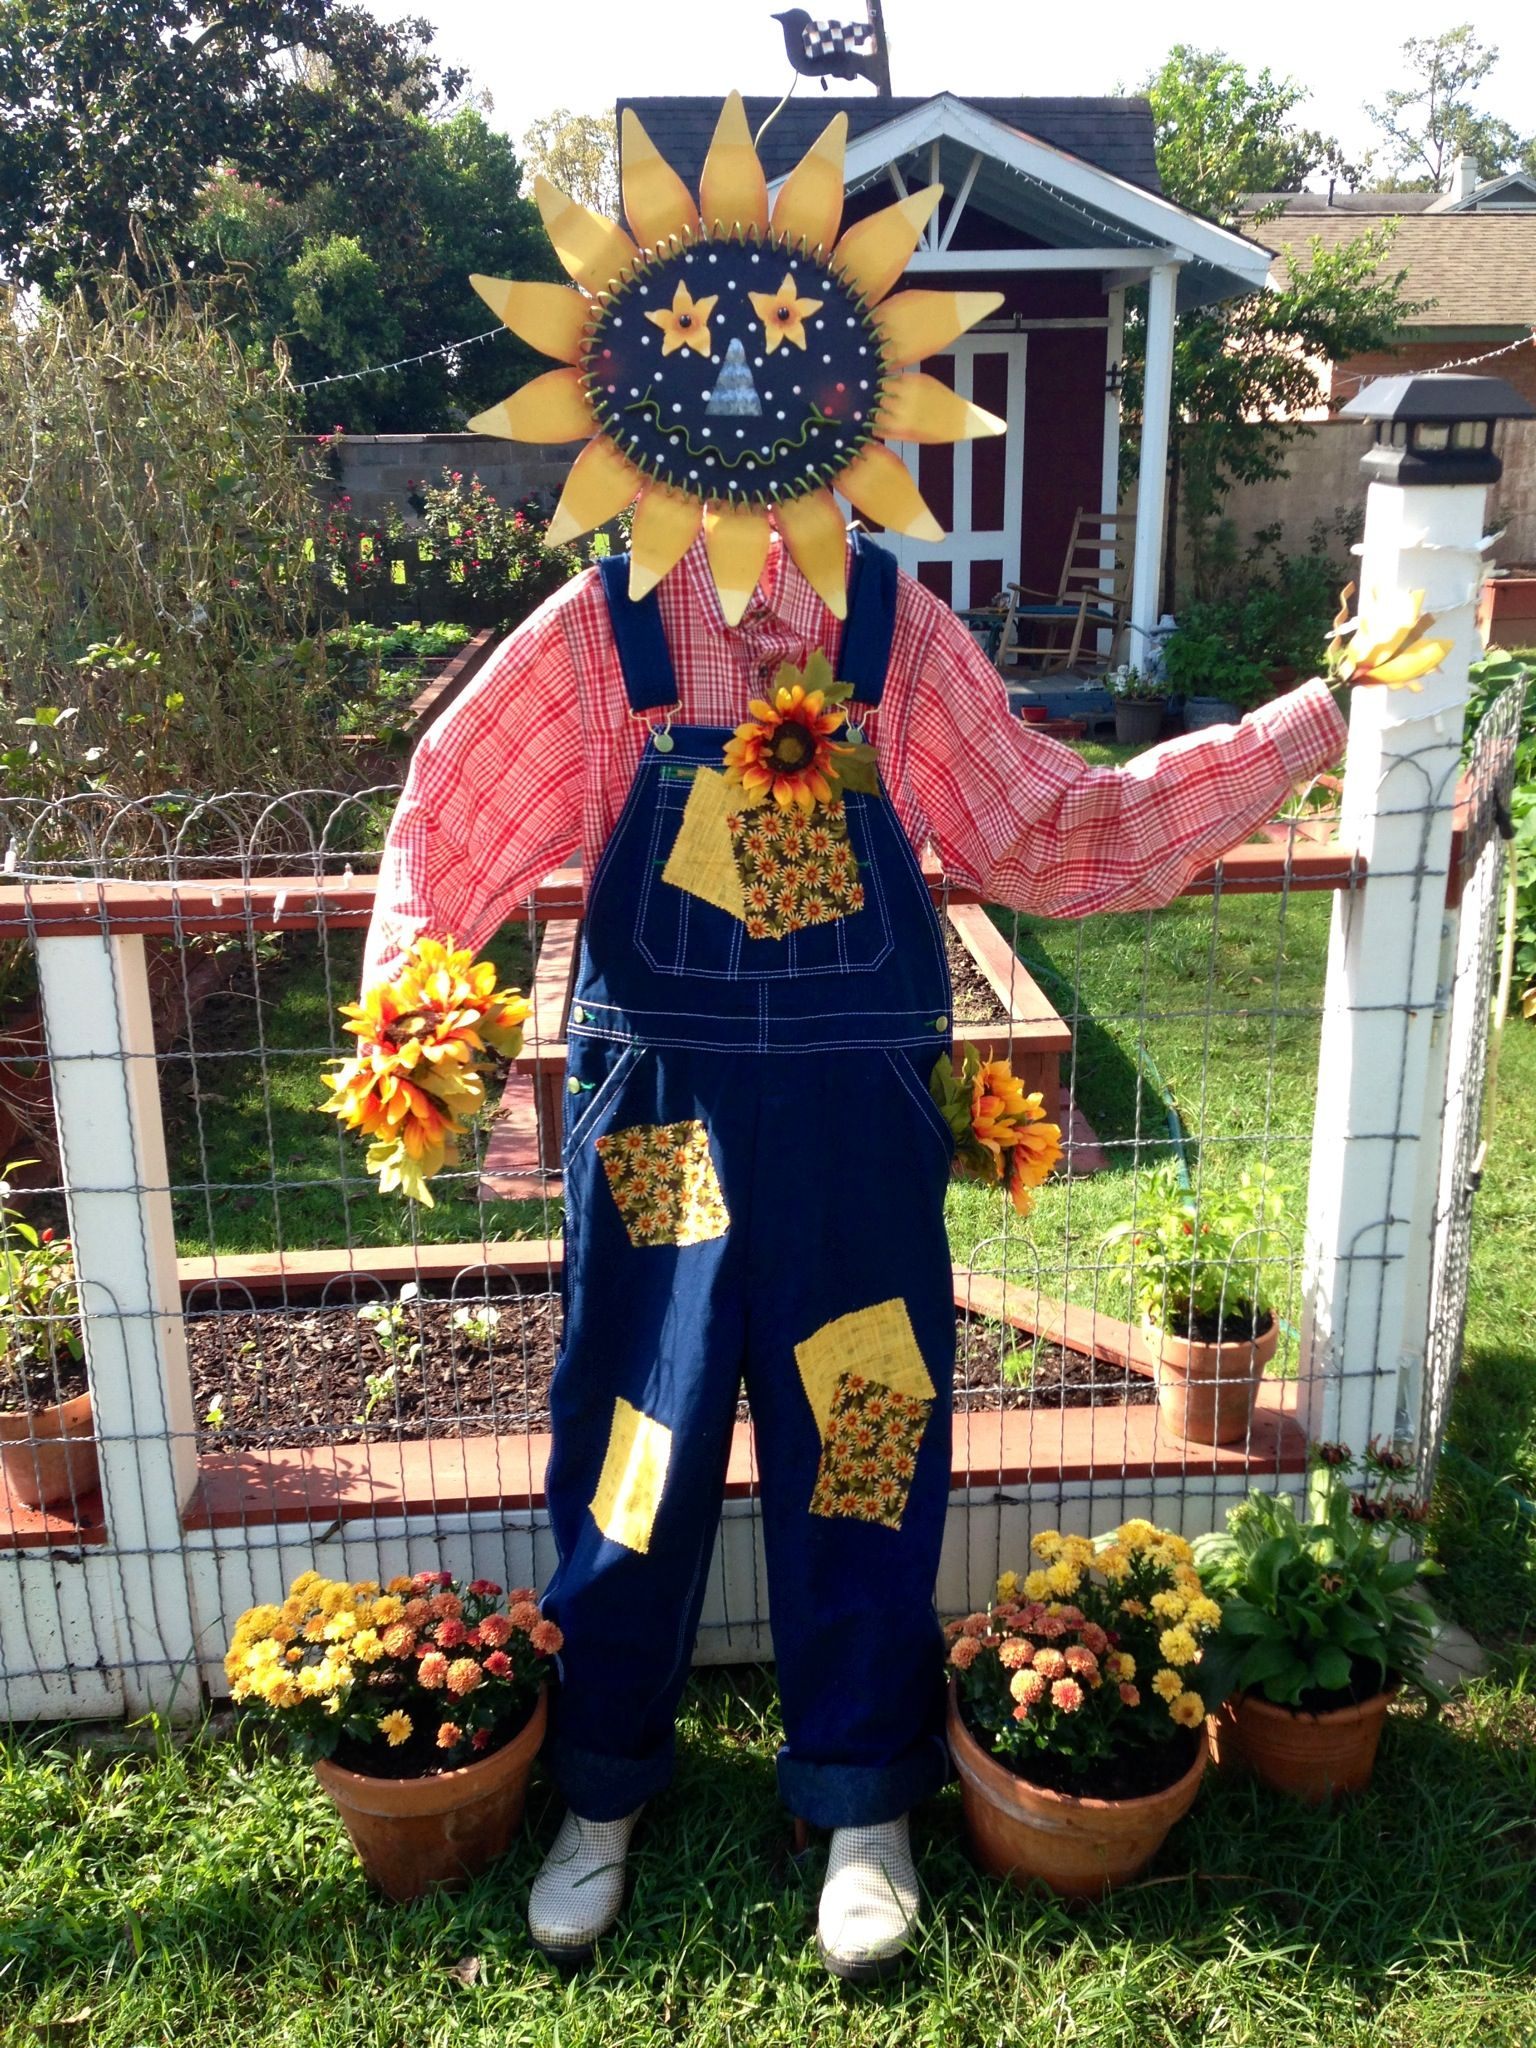 My Garden Scarecrow Scarecrows For Garden Garden Crafts Diy